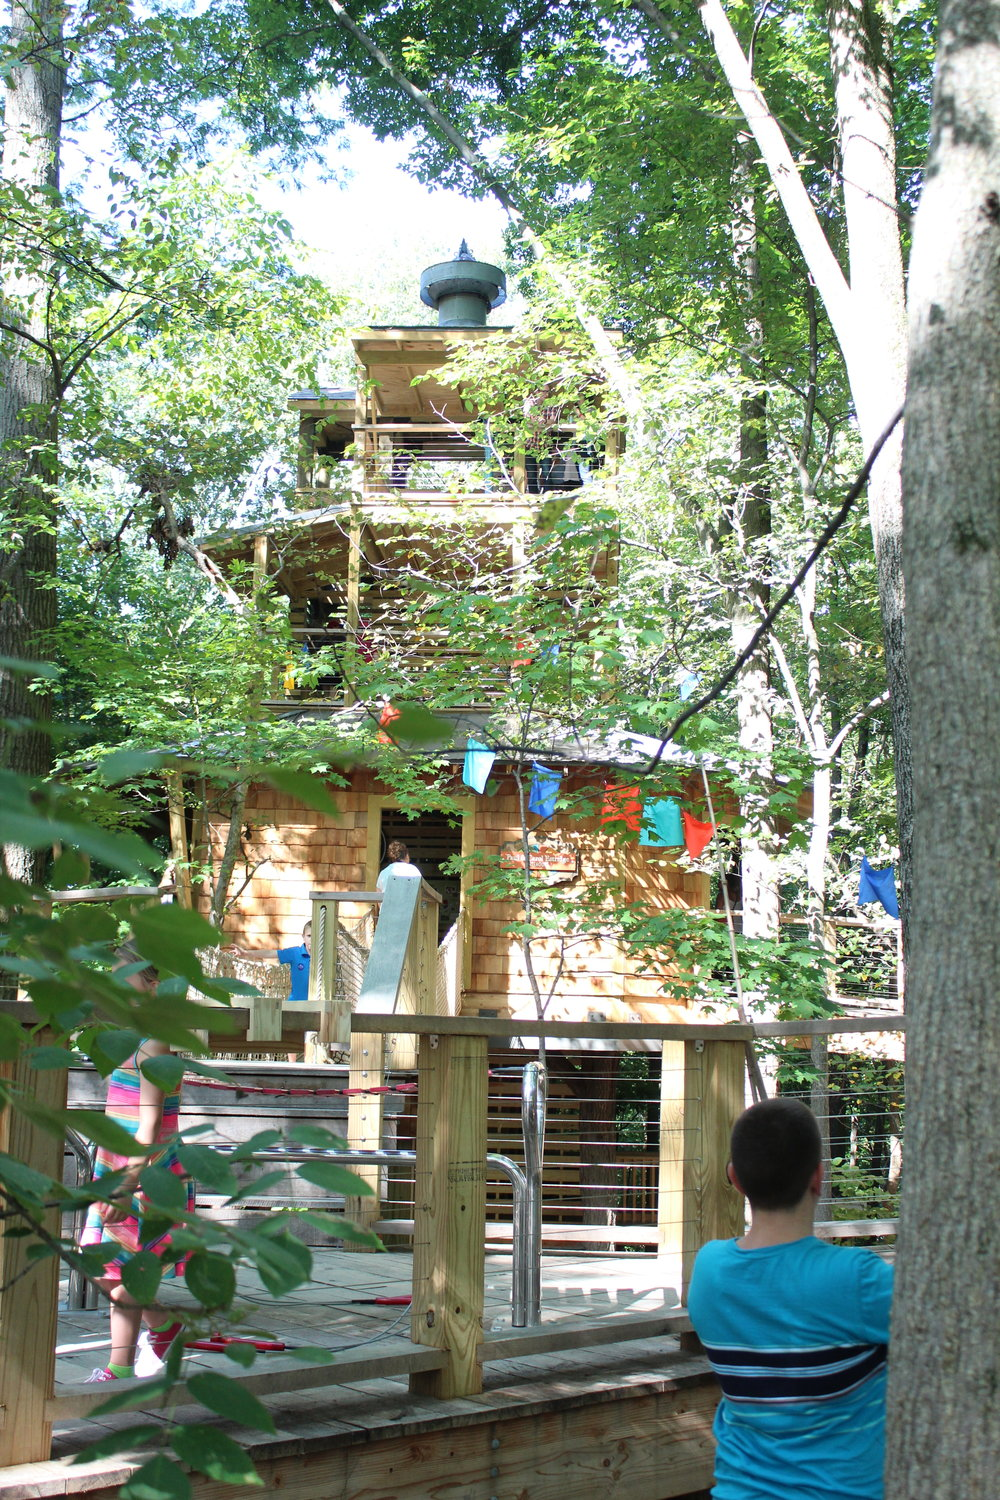 That is one awsome treehouse, Treetop Outpost at Conner Prairie, Fishers Indiana